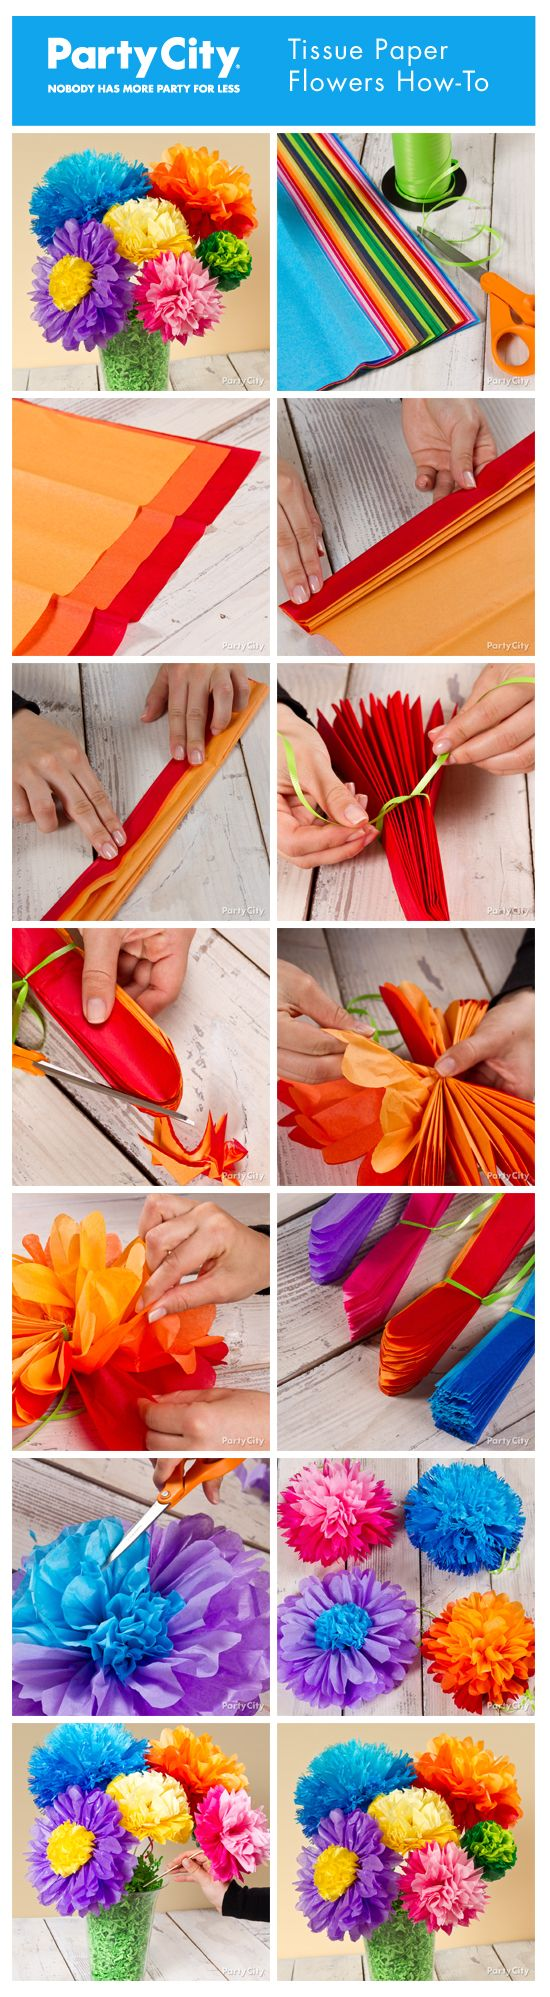 How To Make Pretty Tissue Paper Flowers Step By Photo Tutorial For